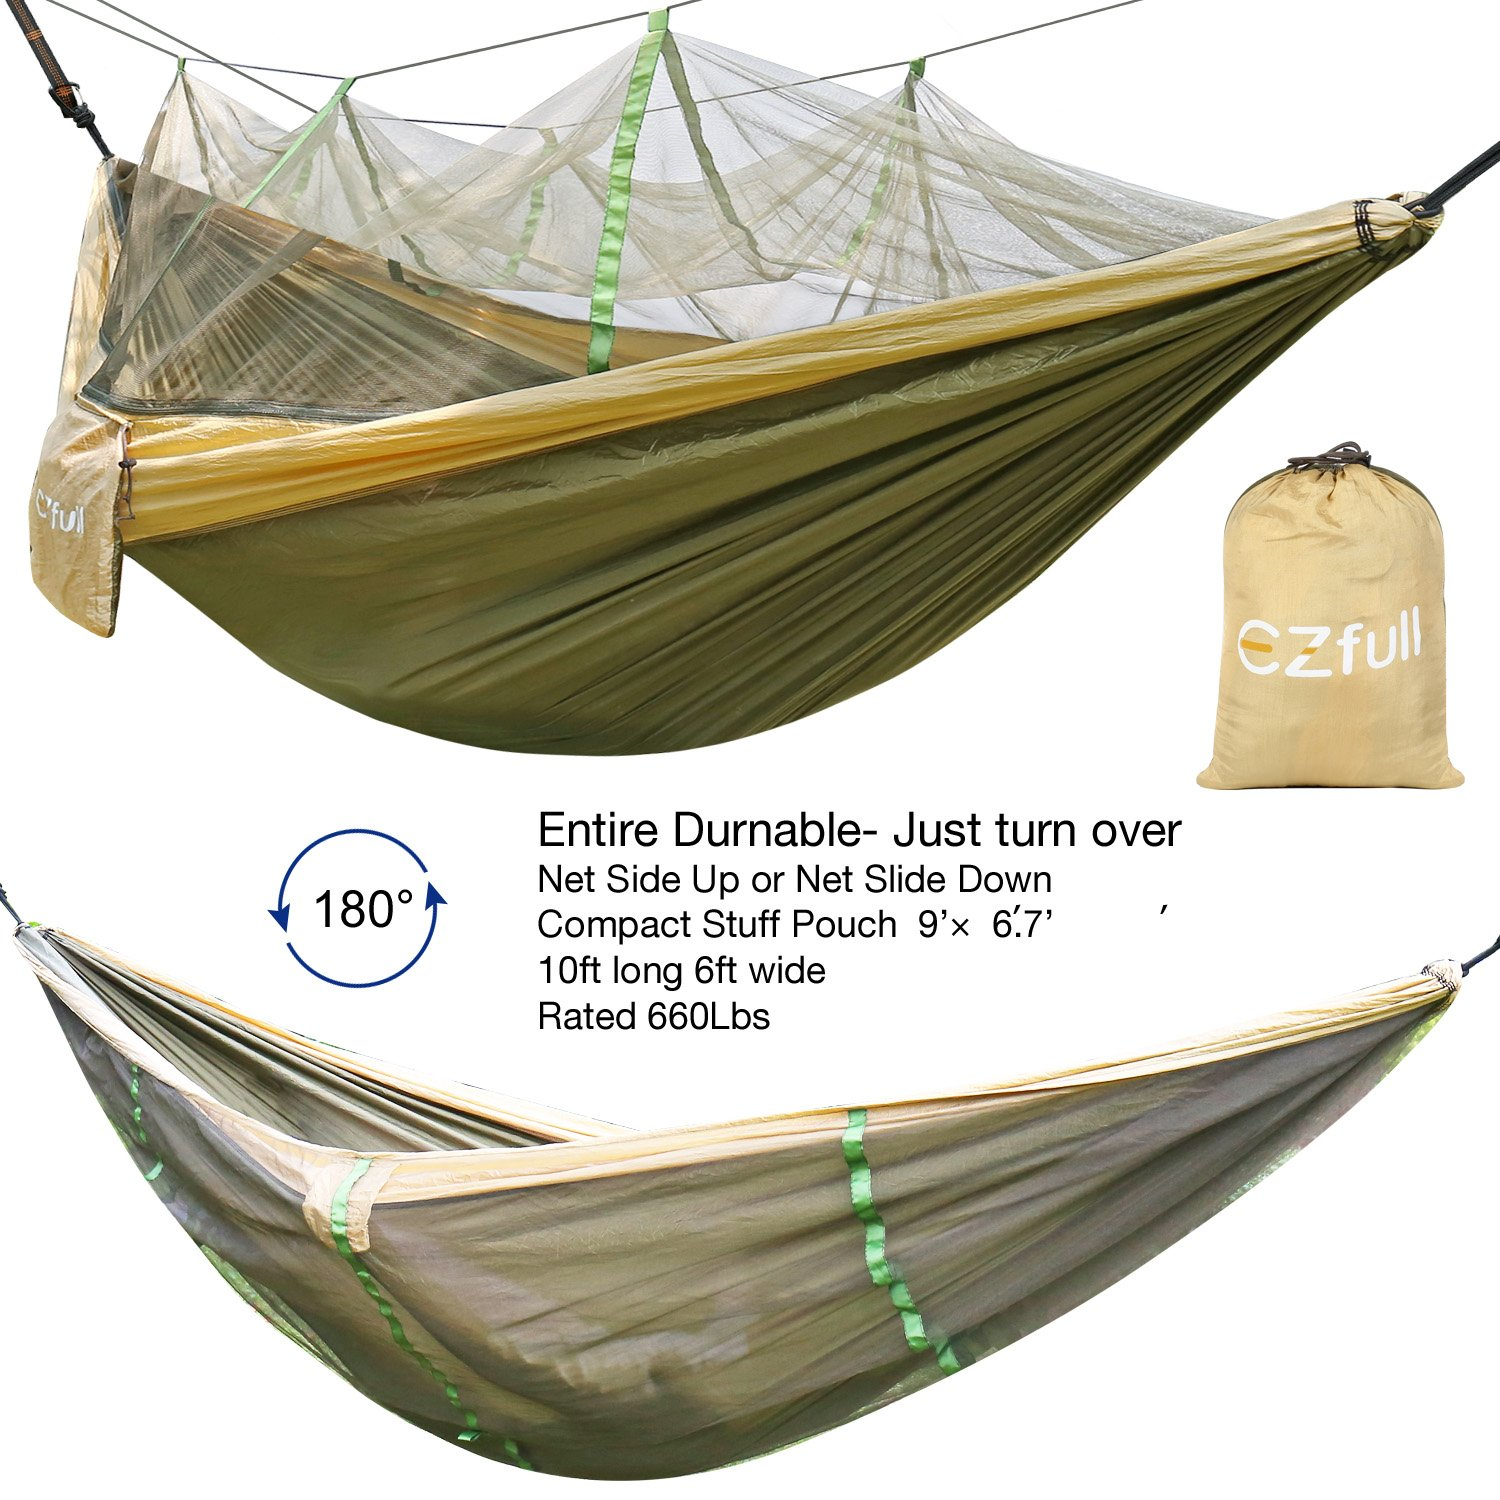 EZfull Double Camping Hammock with Mosquito Net 660LBS Bearing Portable Outdoor Hammocks,10ft Hammock Tree Straps 12KN Carabiners for Backpacking Camping Travel Beach Yard. 118 L x 78 W